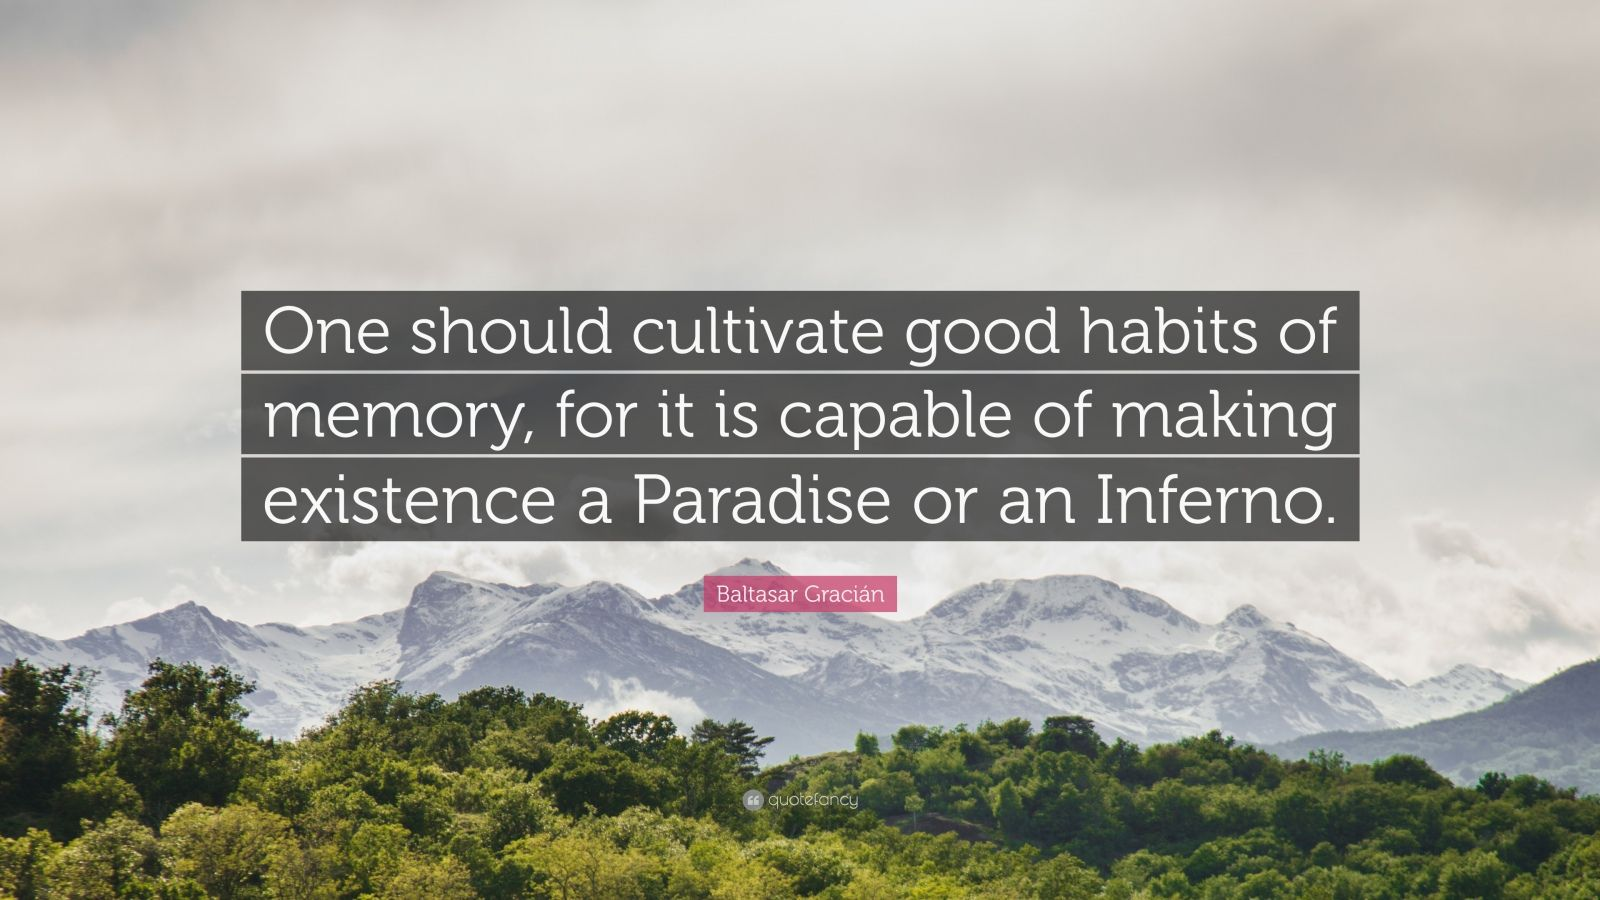 """Baltasar Gracián Quote: """"One should cultivate good habits of memory, for it is capable of making existence a Paradise or an Inferno."""""""